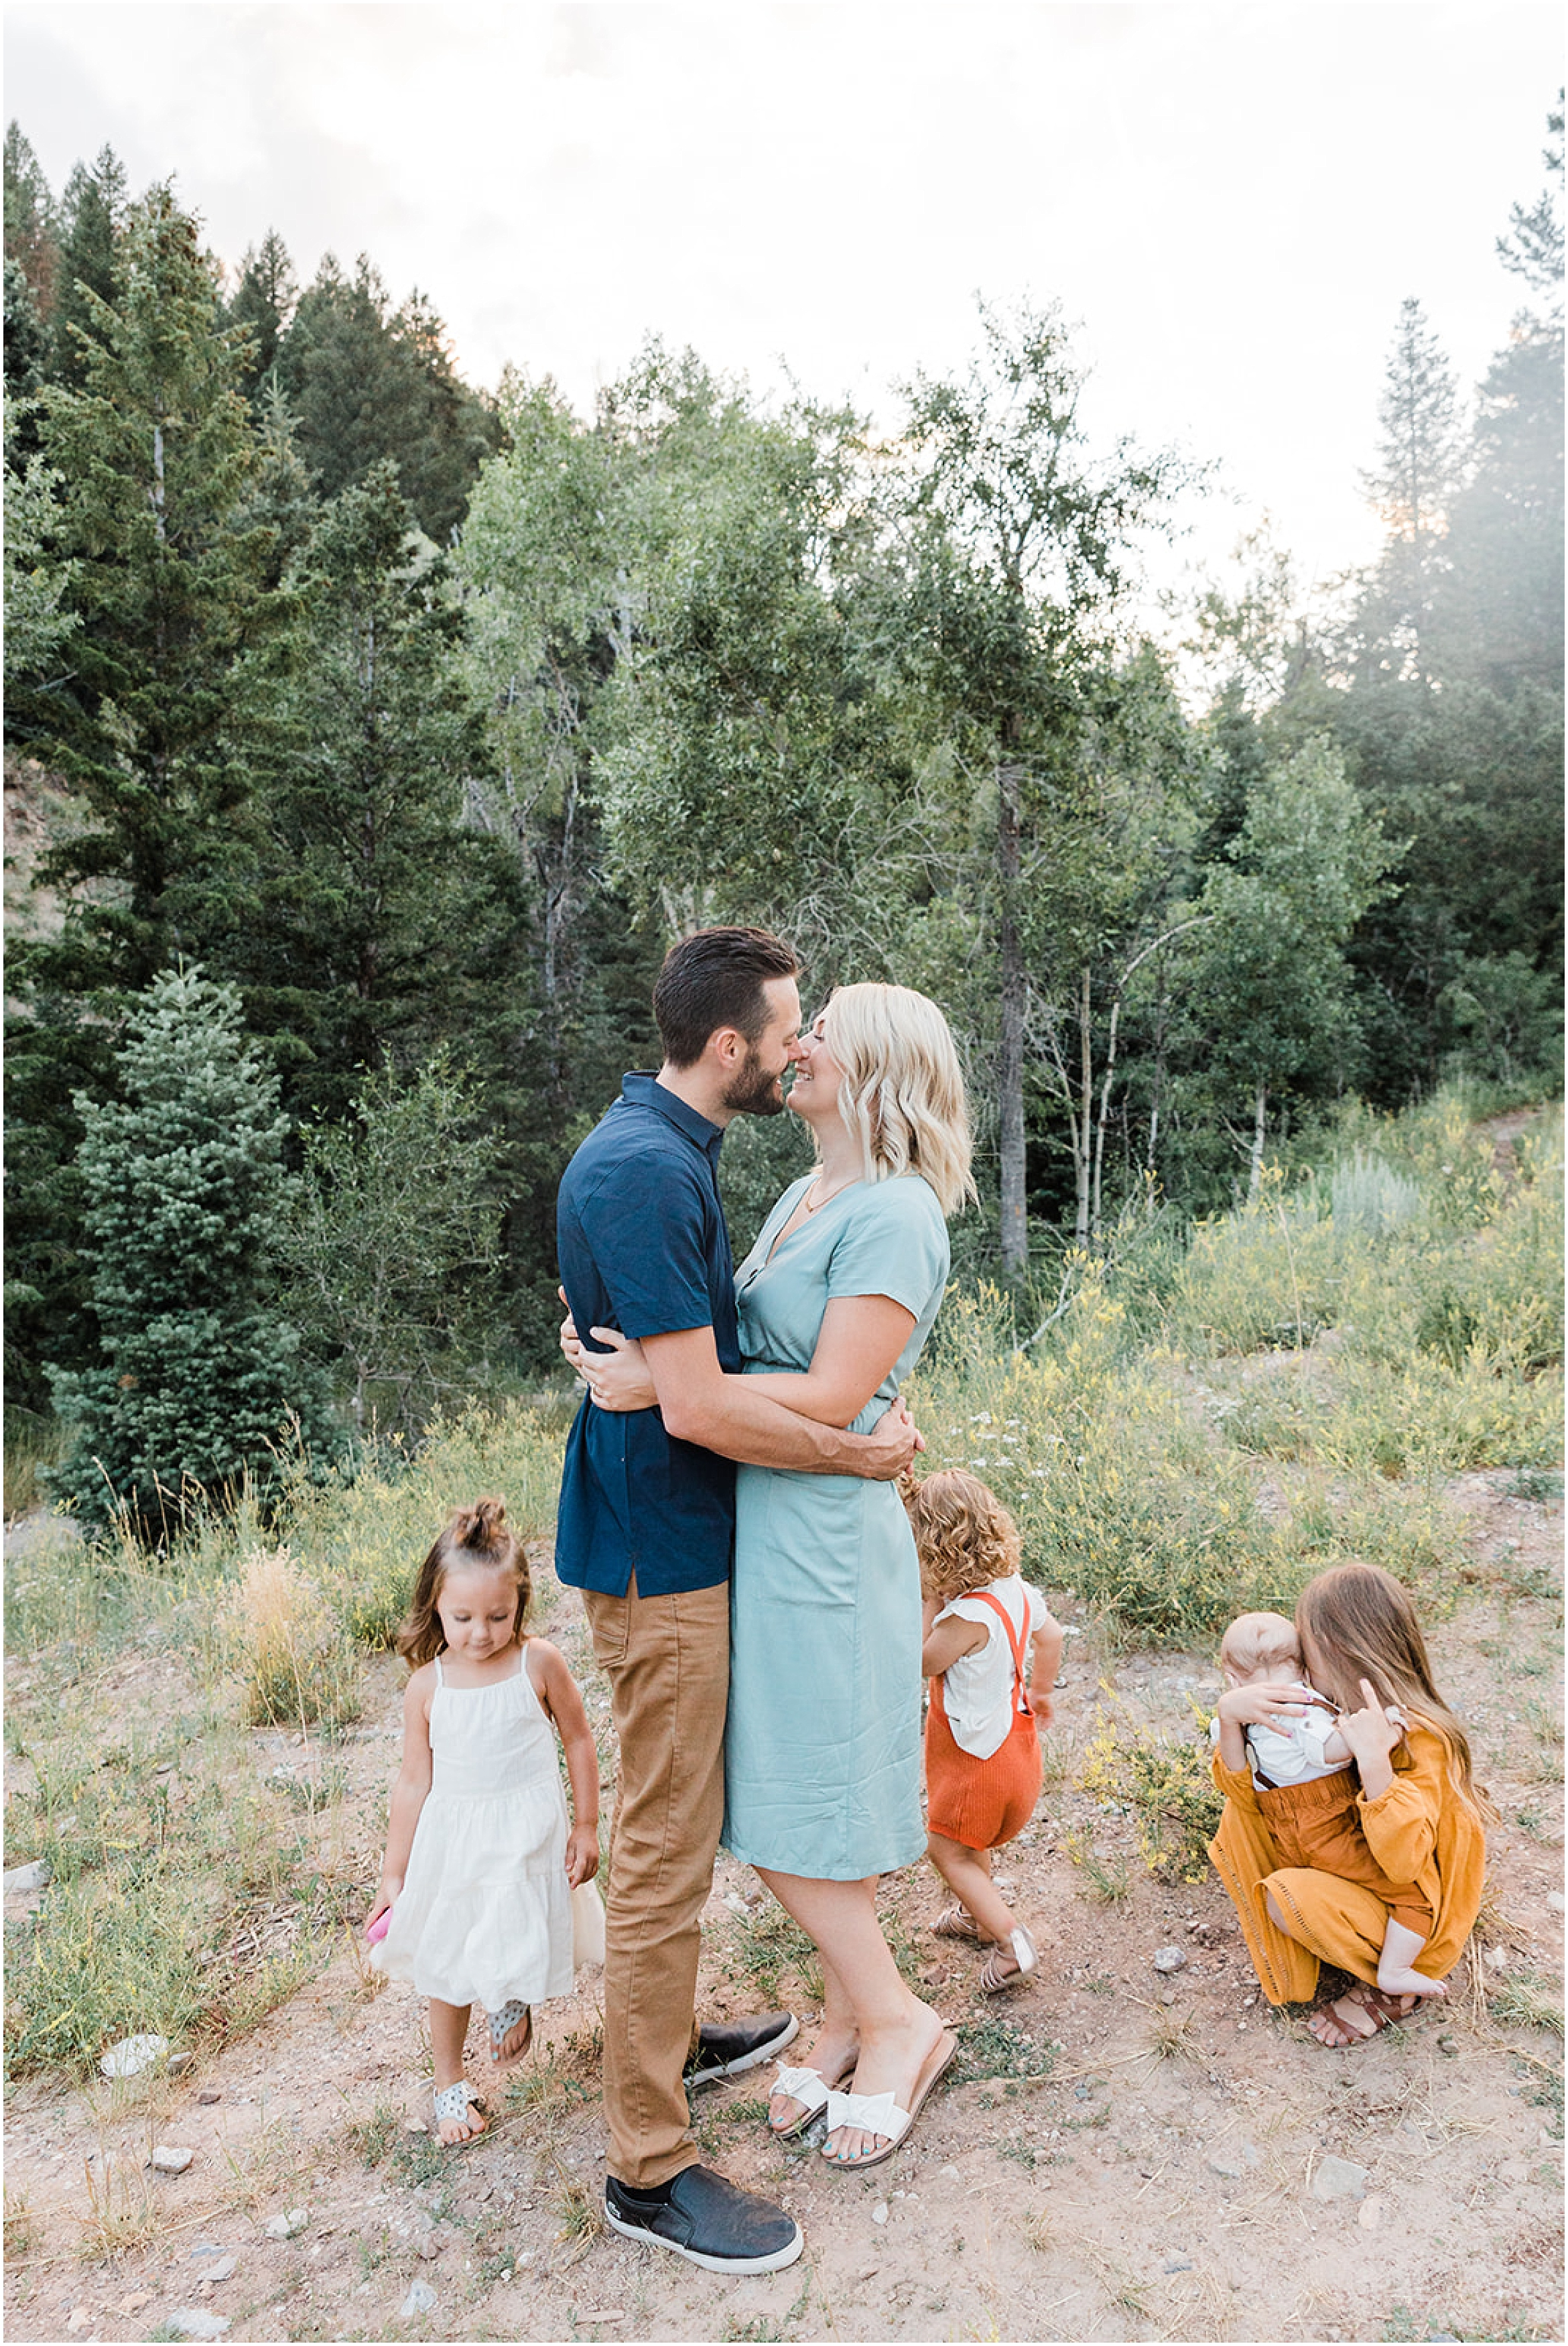 Kenzie Jo Photography, Family pictures, Gorgeous outdoor family pictures, what to wear for family pictures